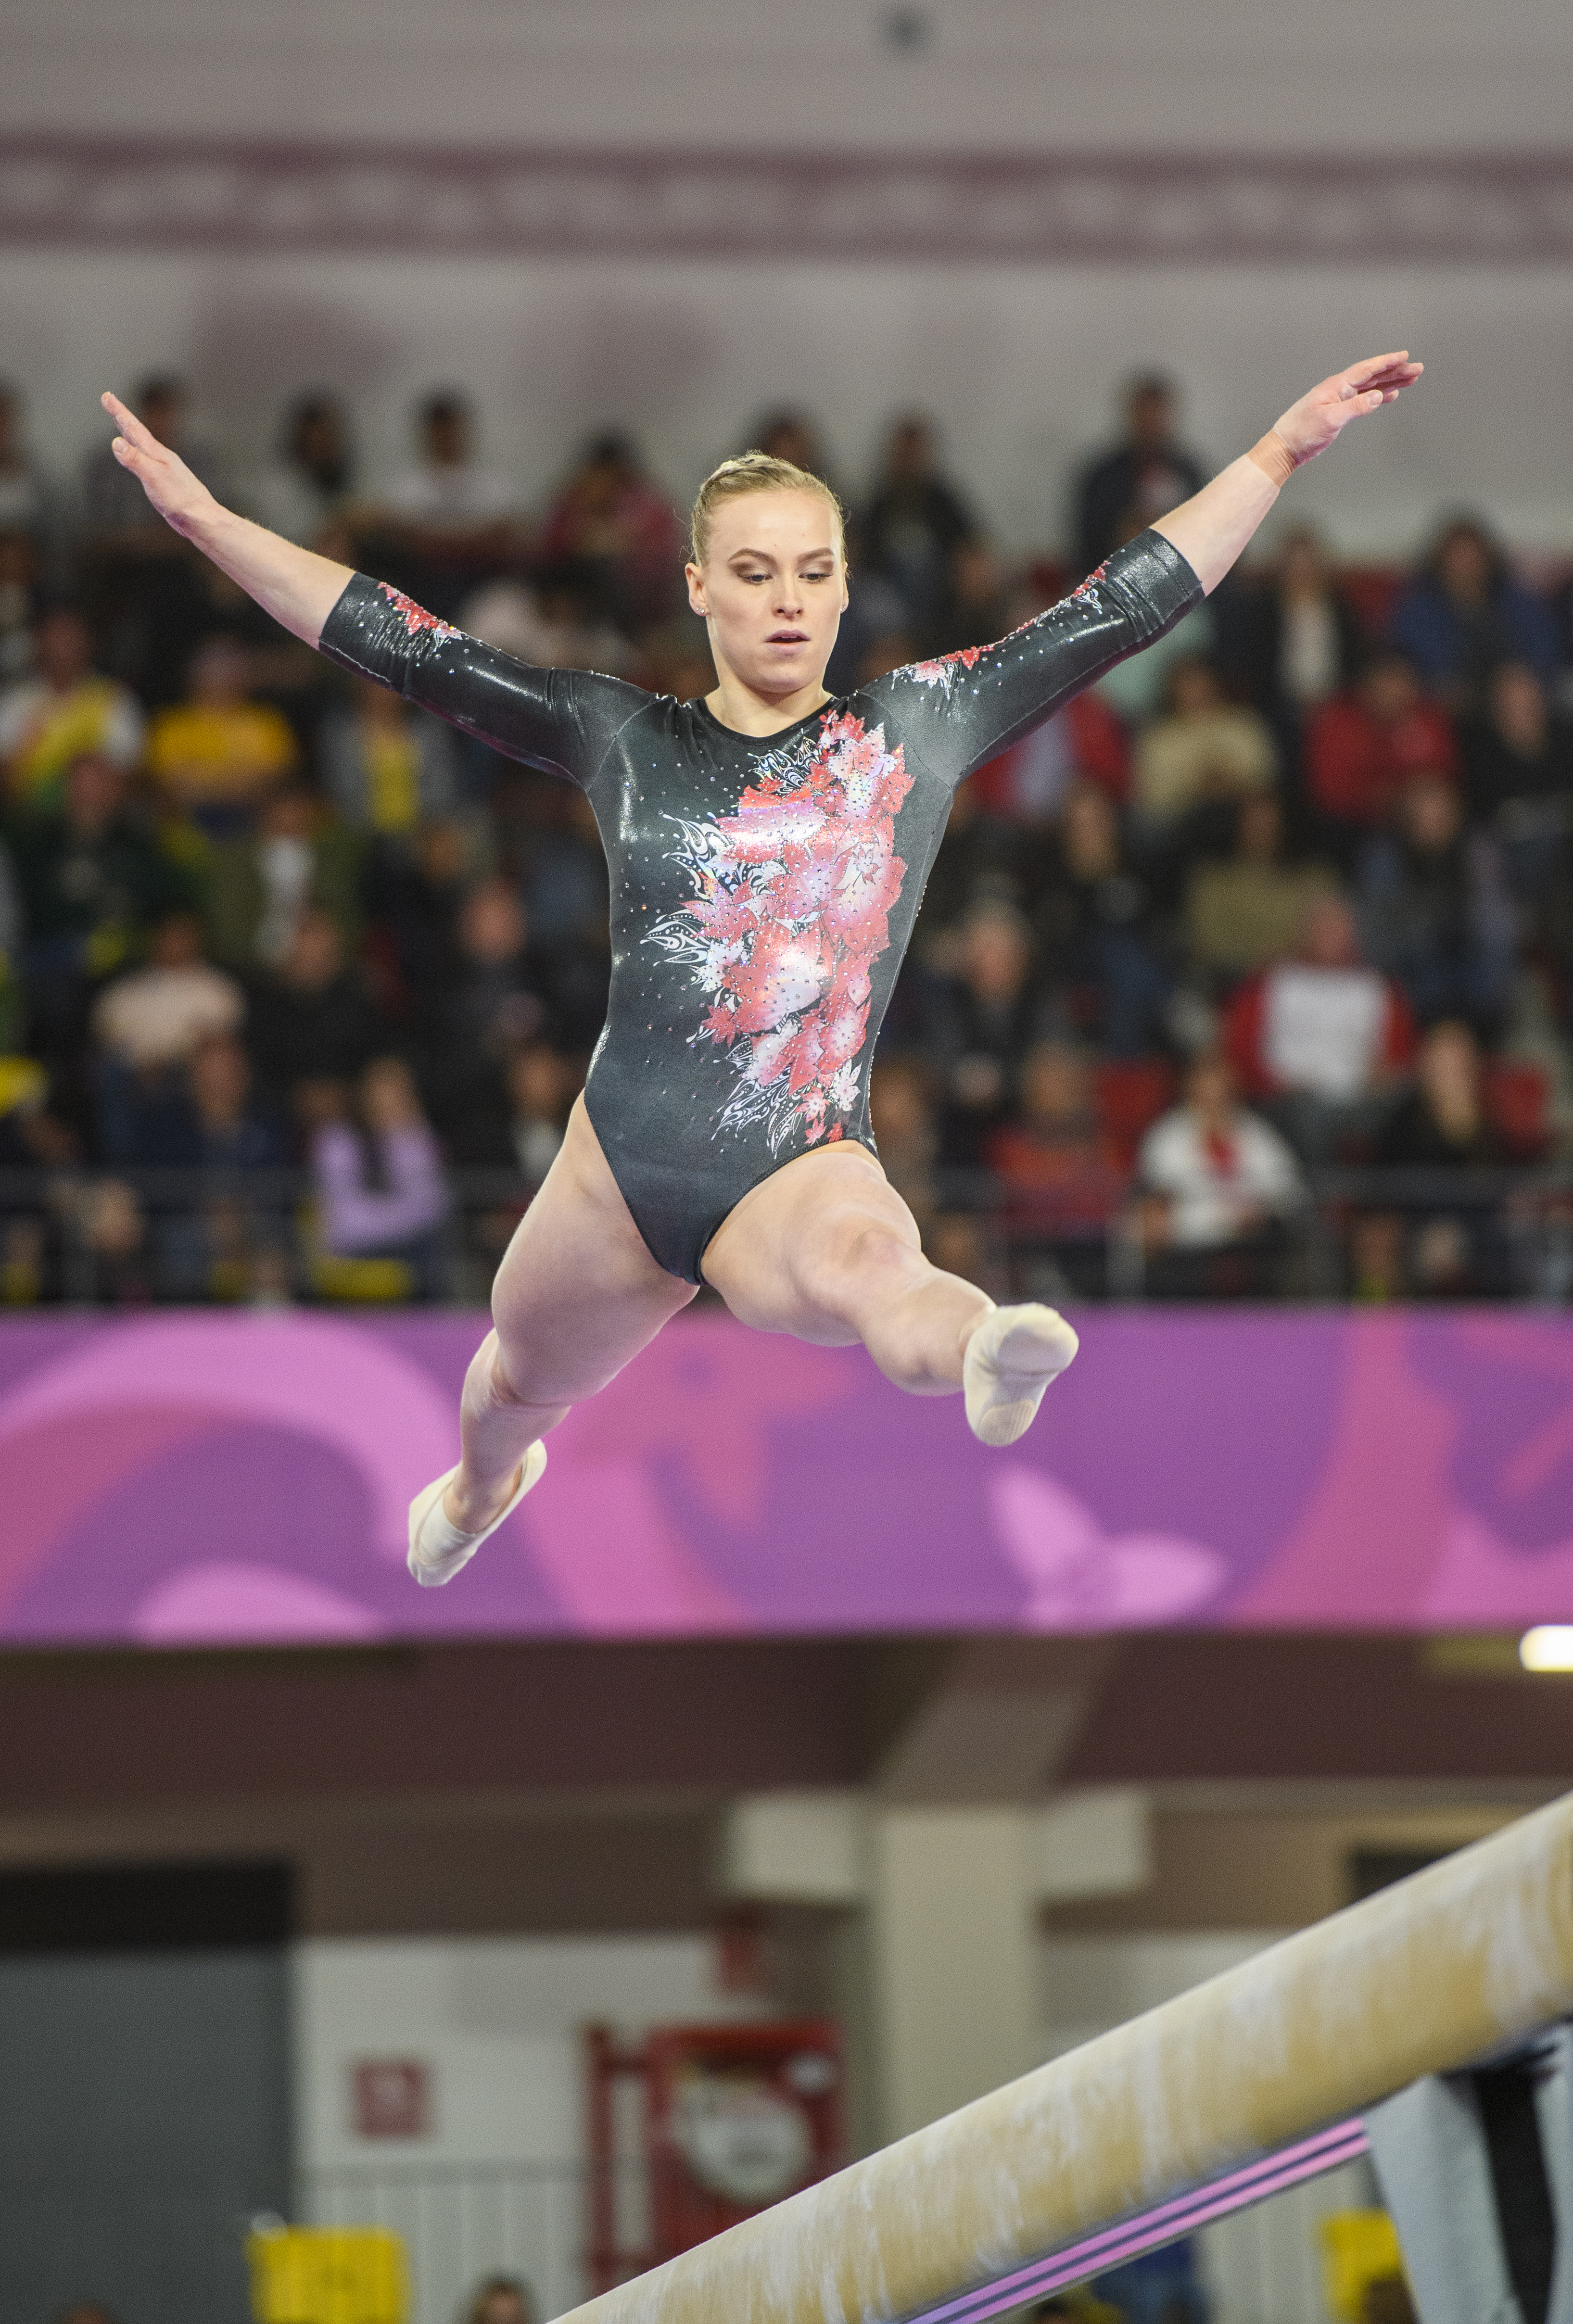 Gymnast does a split leap on the beam